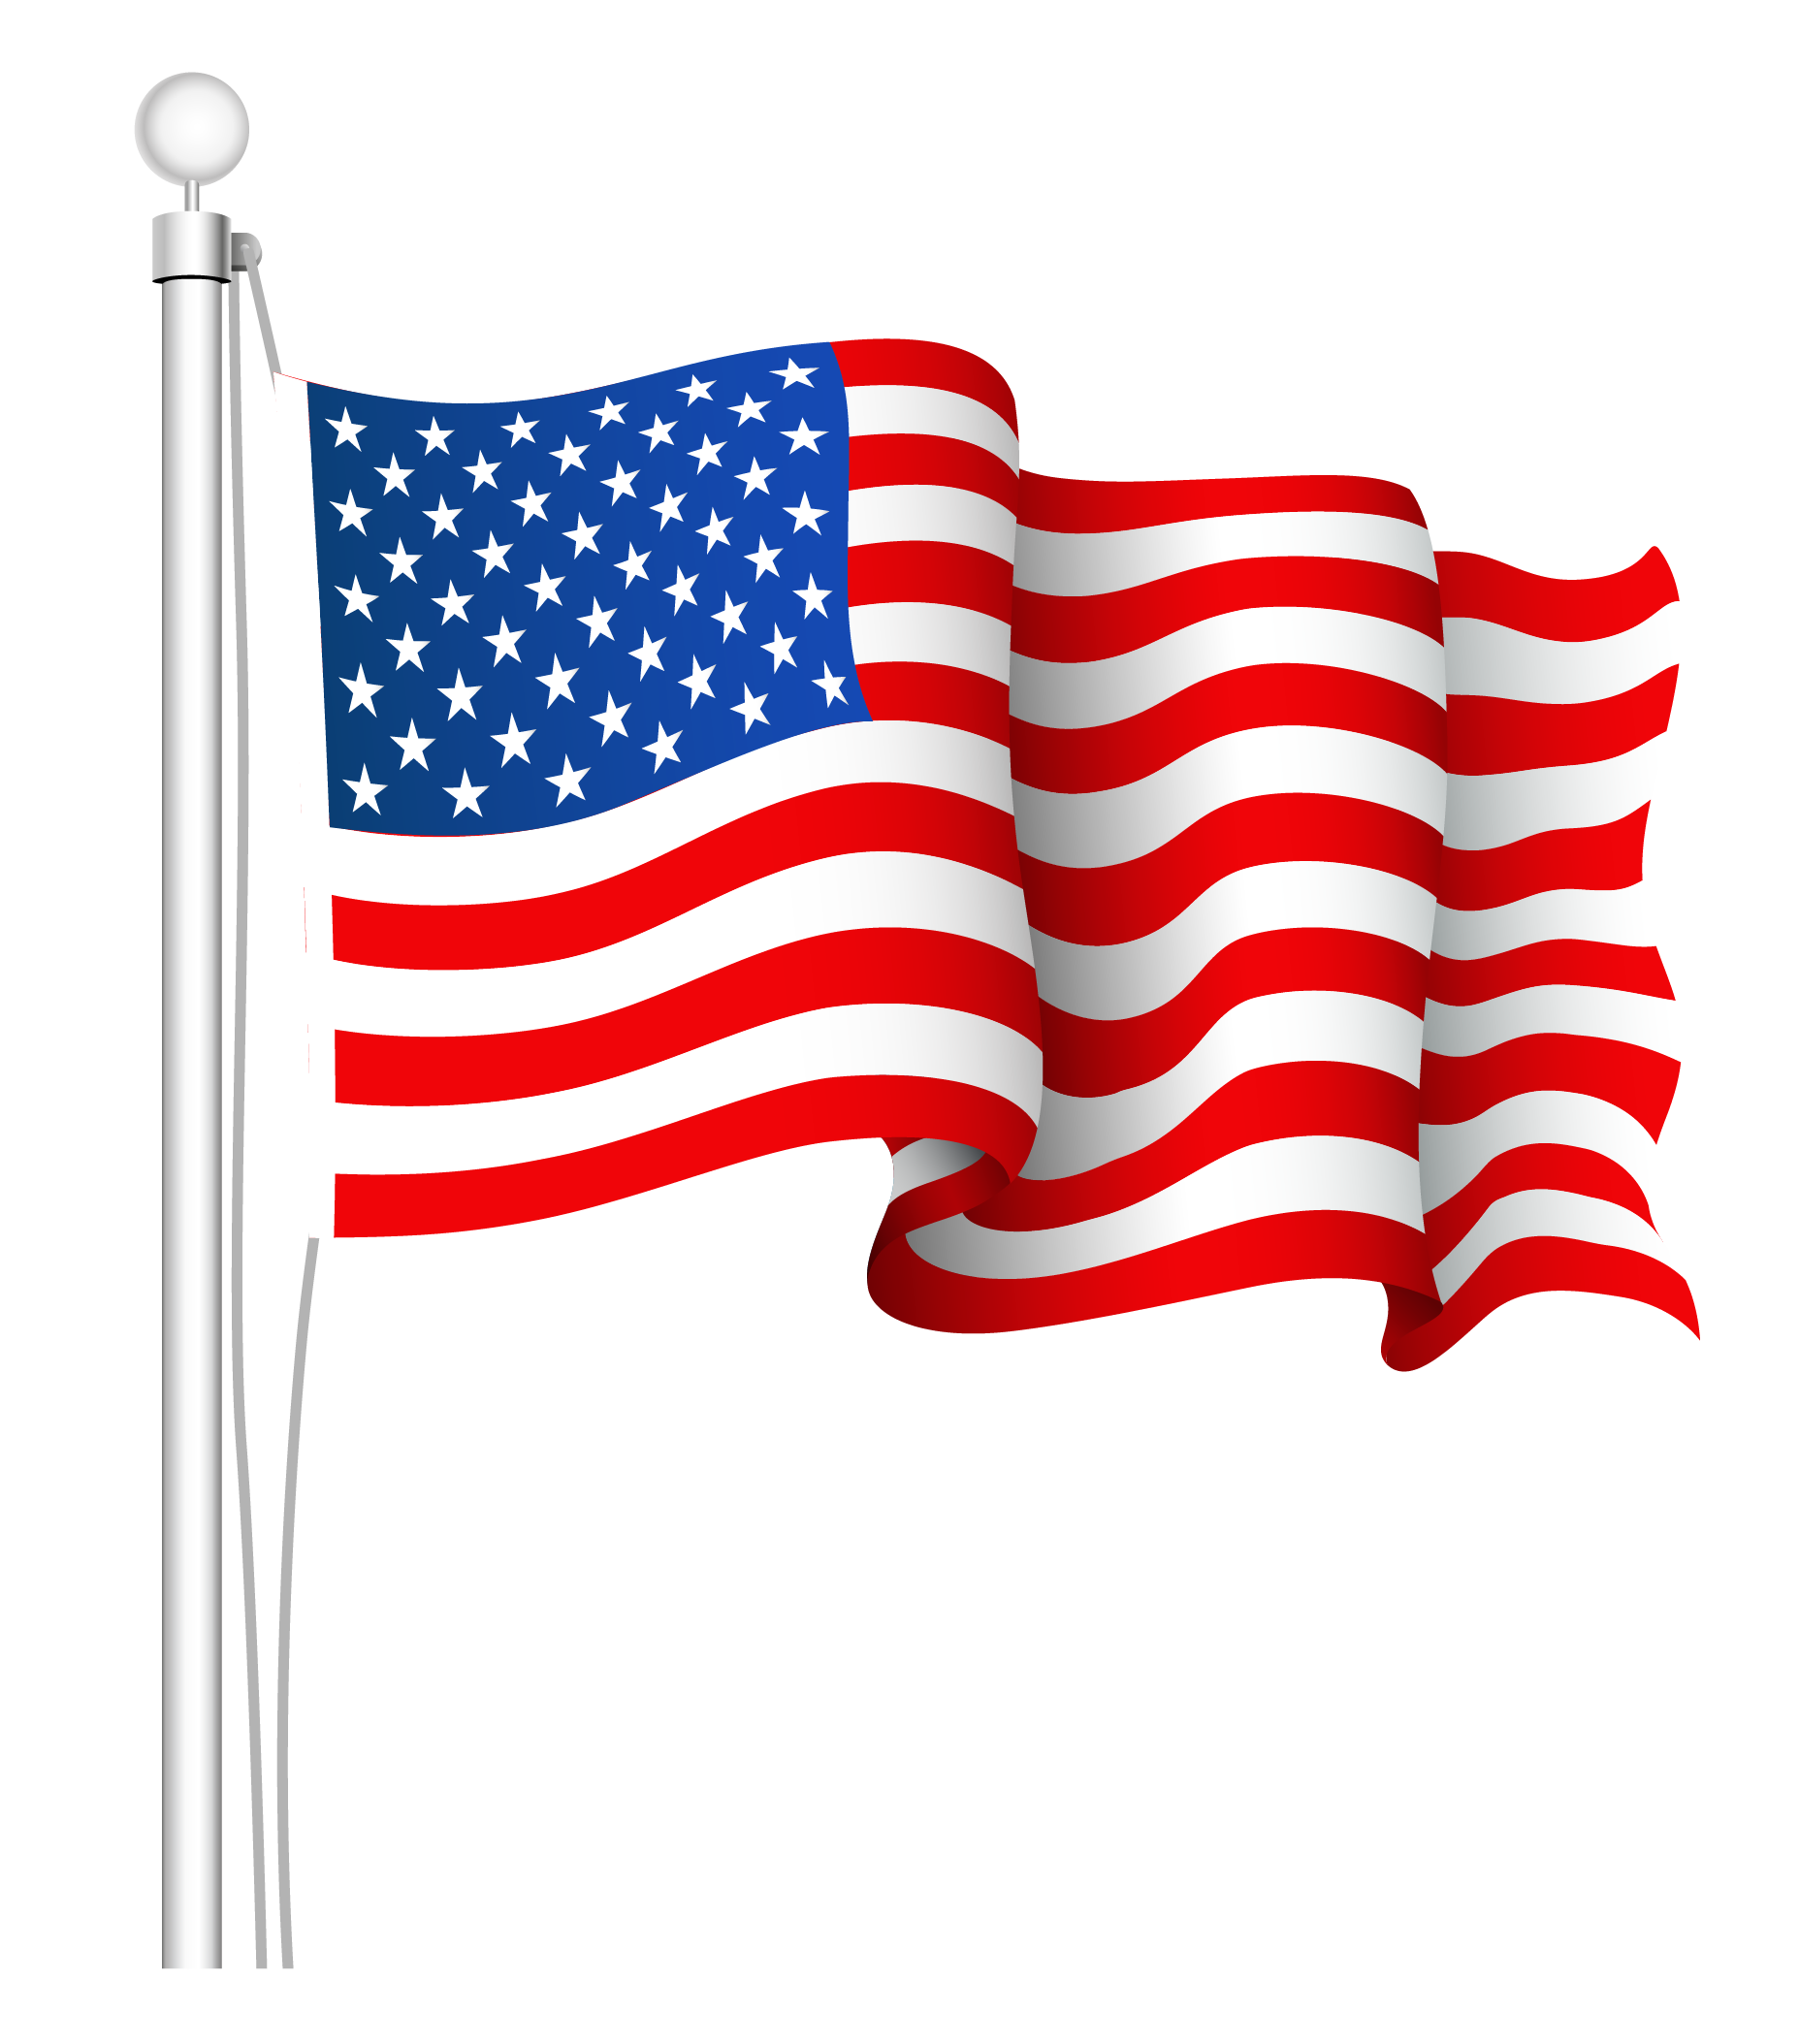 United States Flag Clip Art Cliparts Co-United States Flag Clip Art Cliparts Co-13